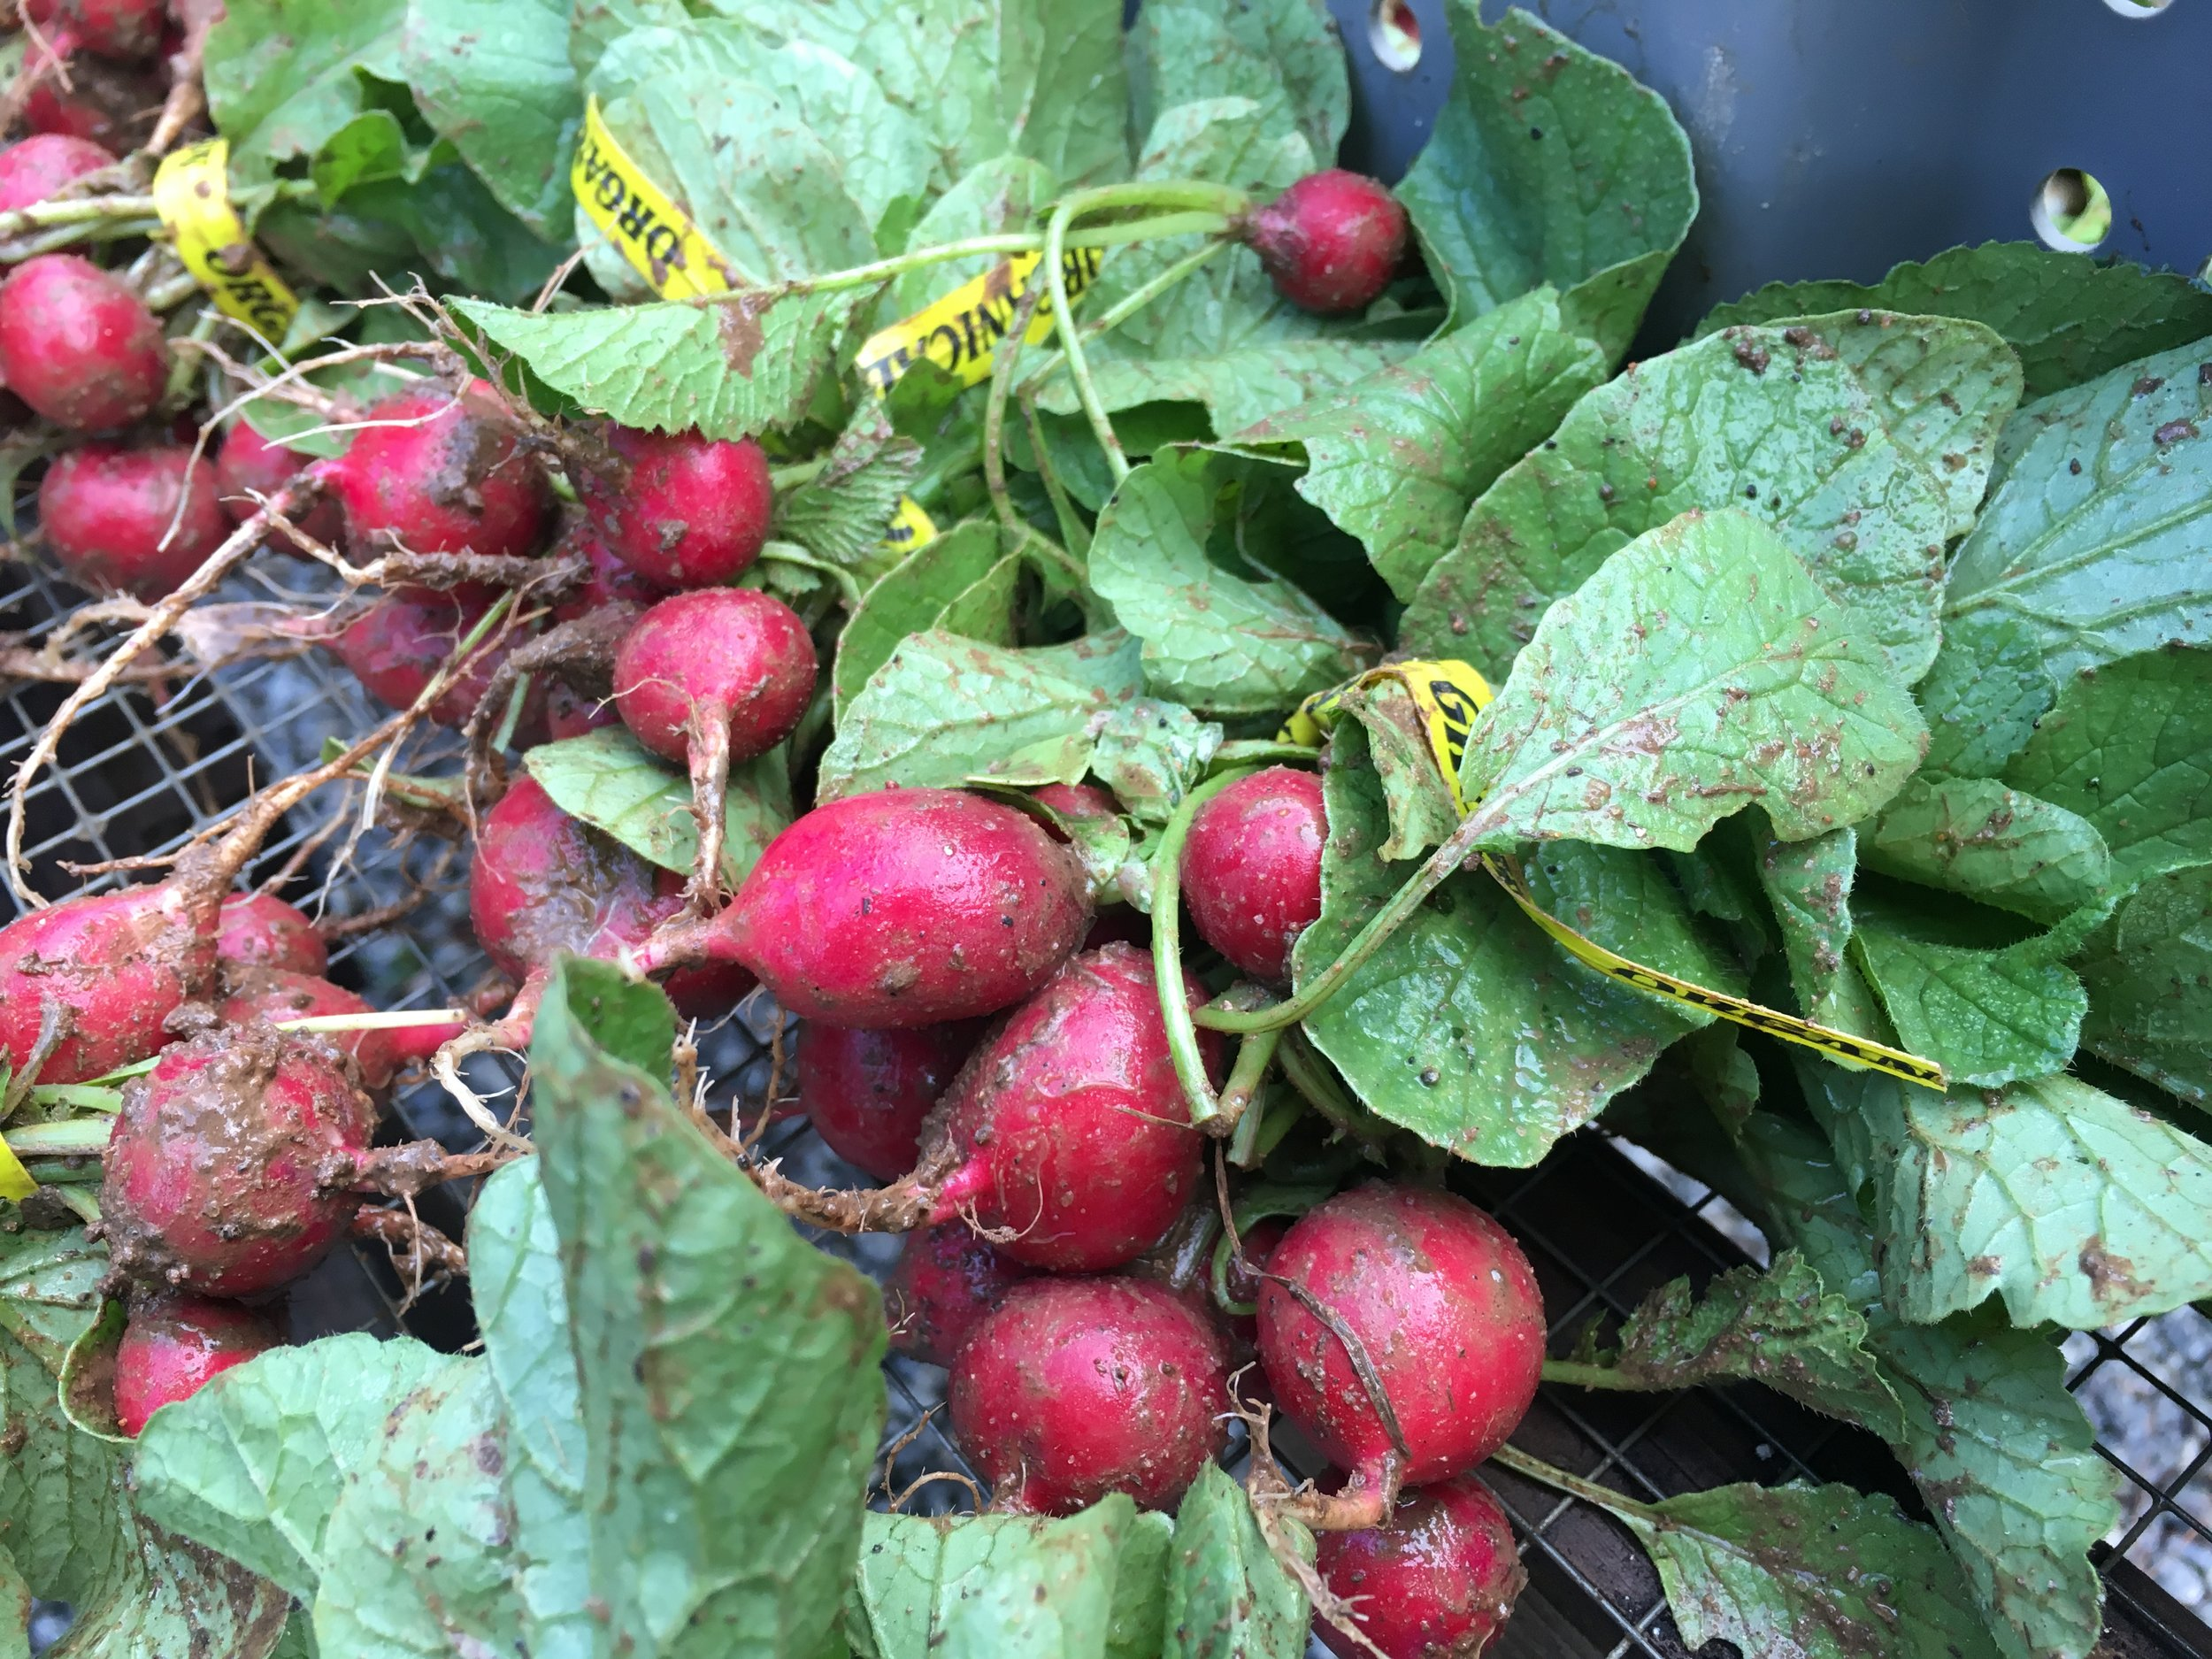 Eagle grown radishes